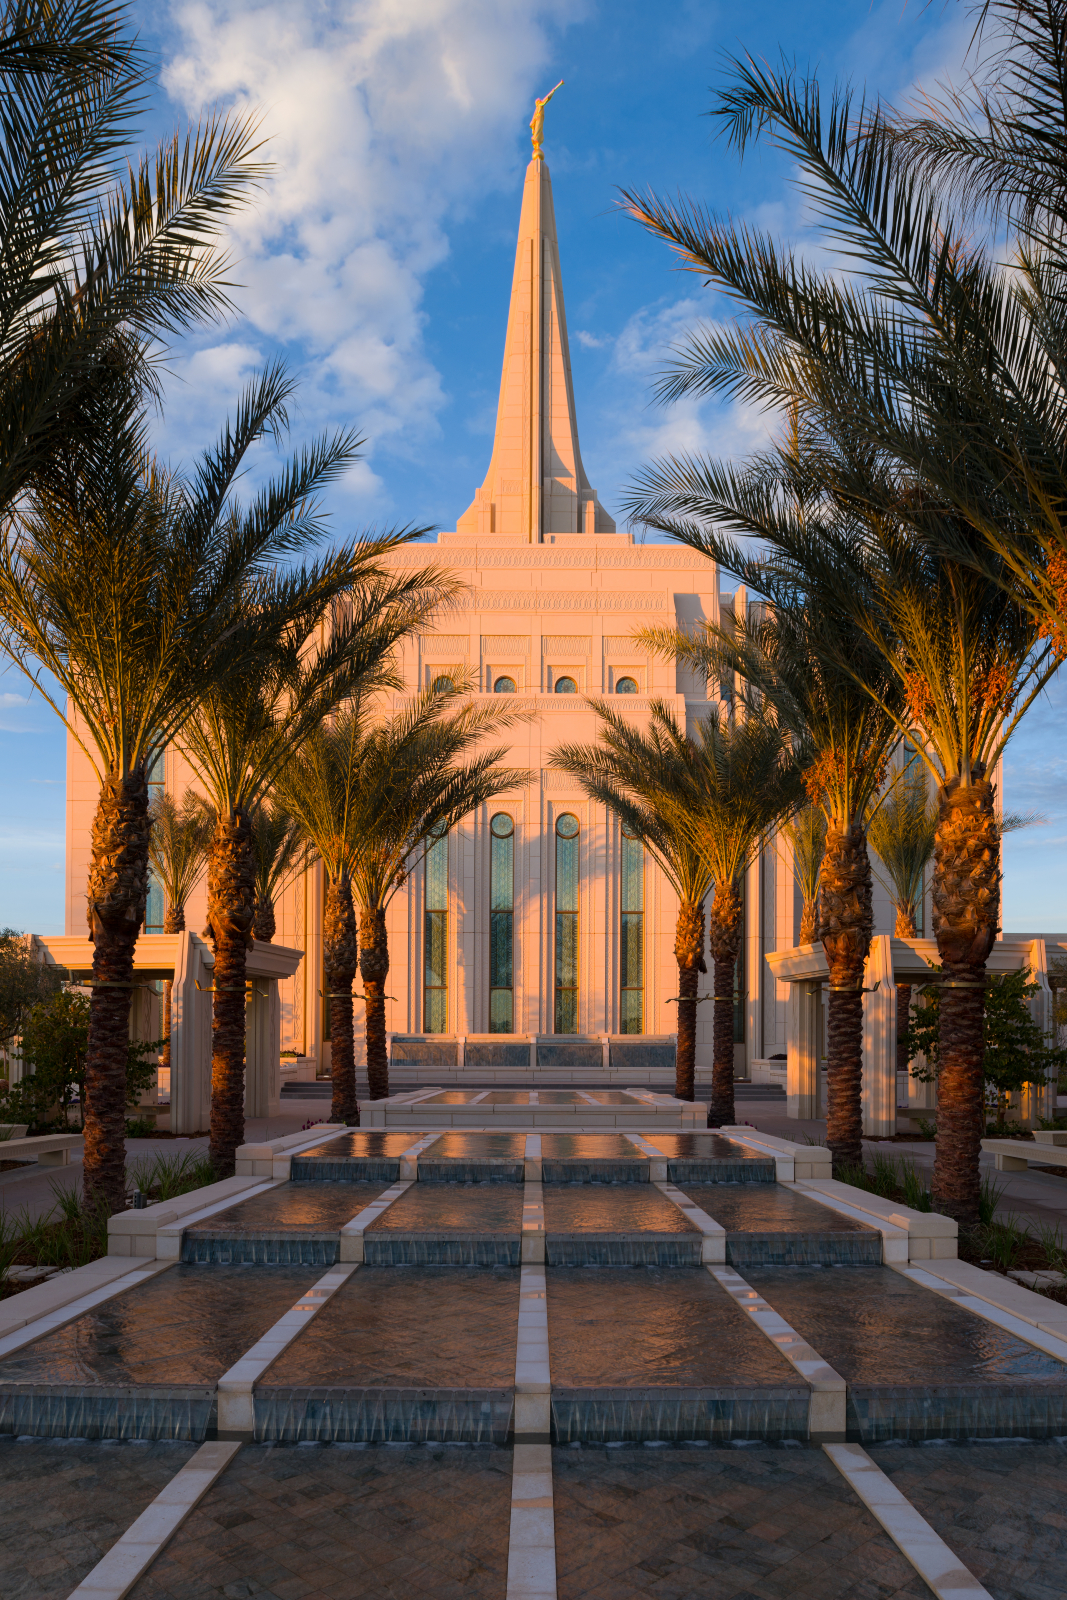 The Fountain on the Grounds of the Gilbert Arizona Temple